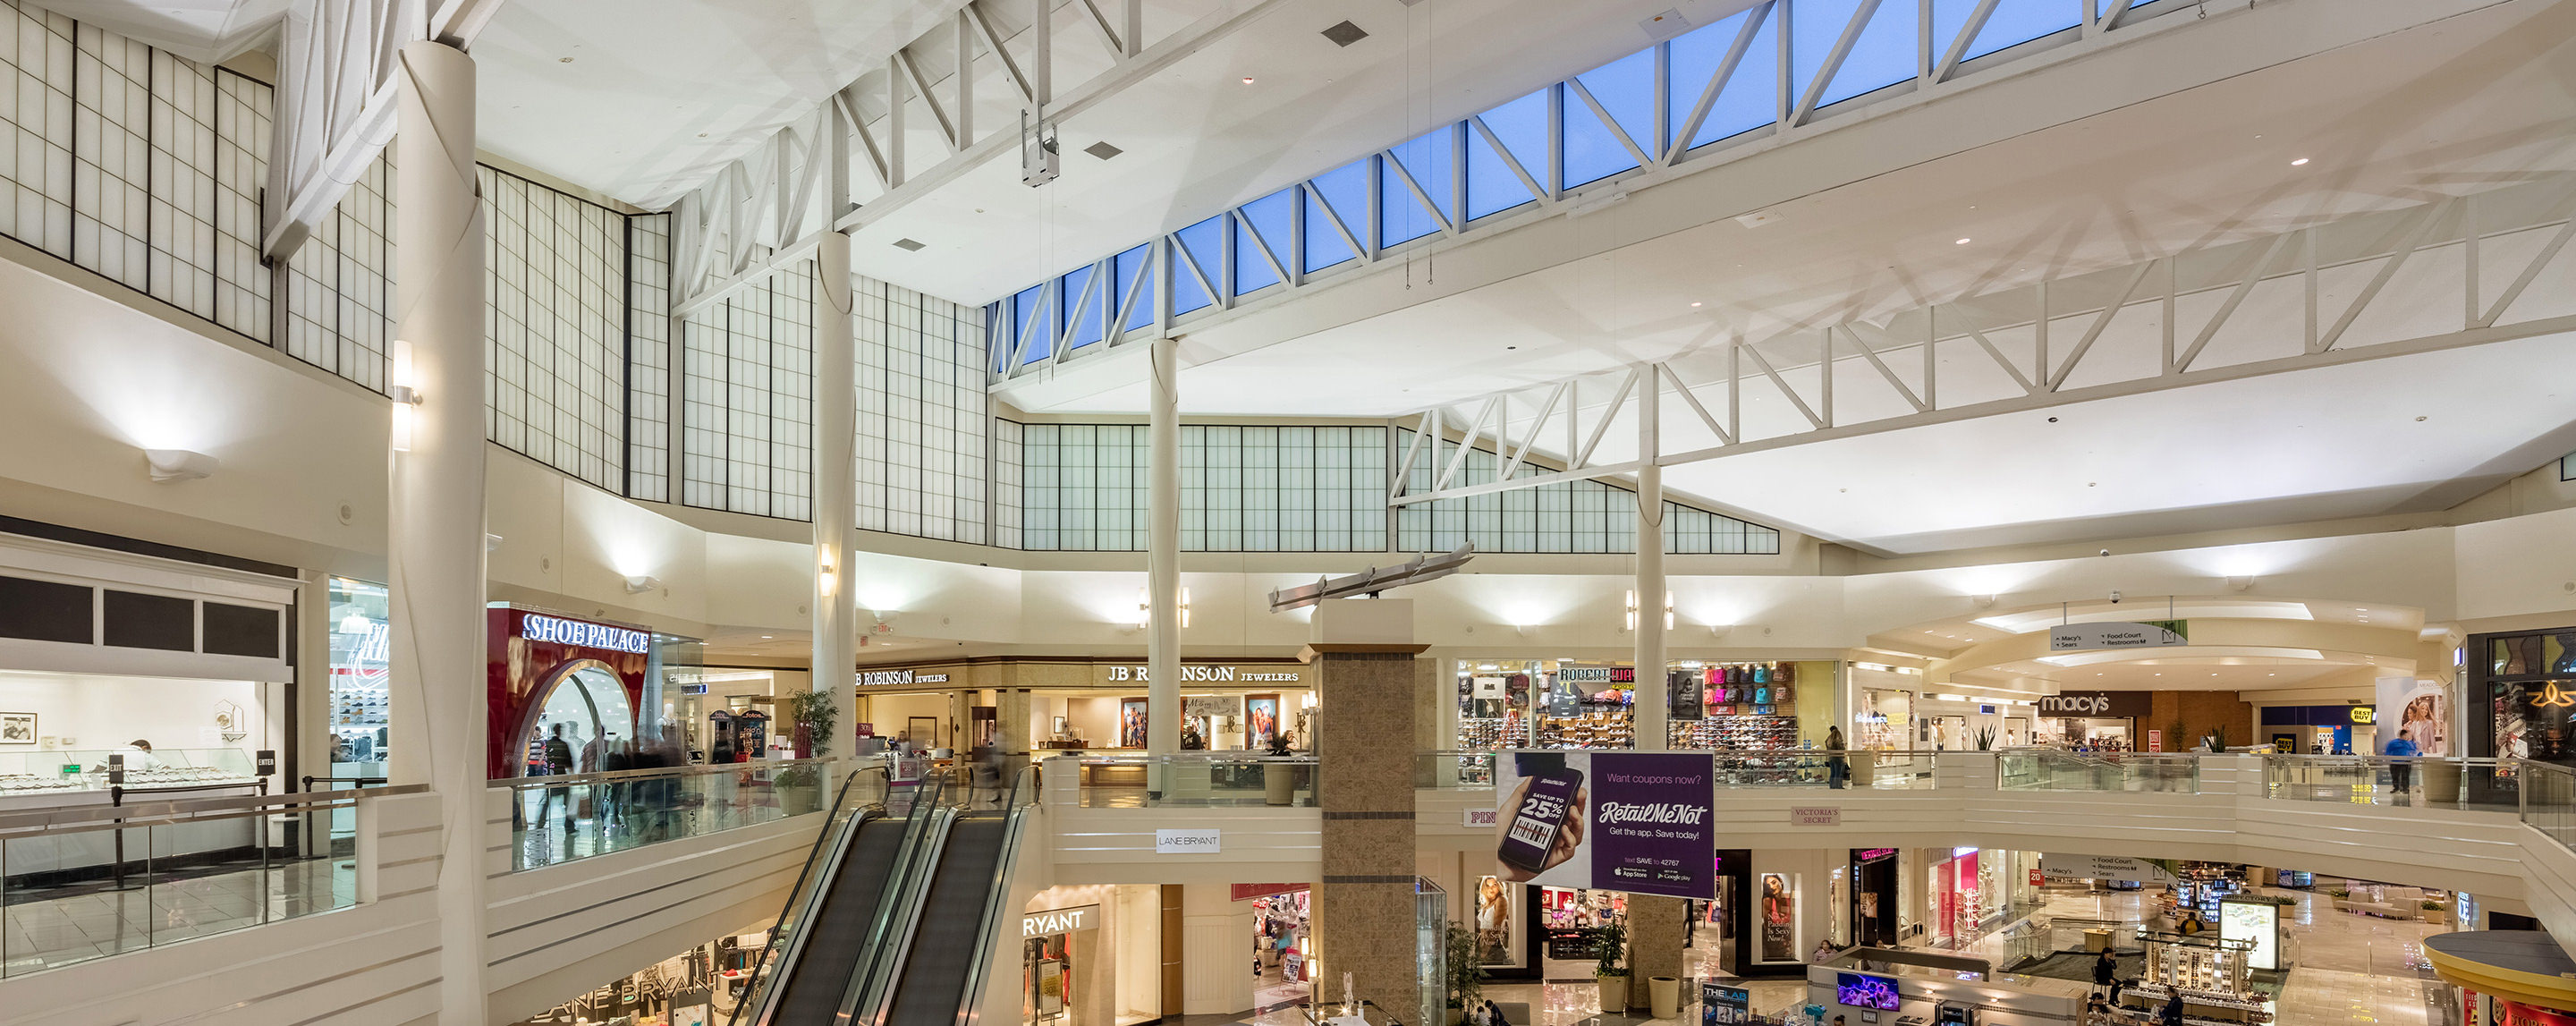 In the main indoor atrium at Meadows Mall, two levels are lined with store fronts and an escalator that can easily take shoppers from one to the other.